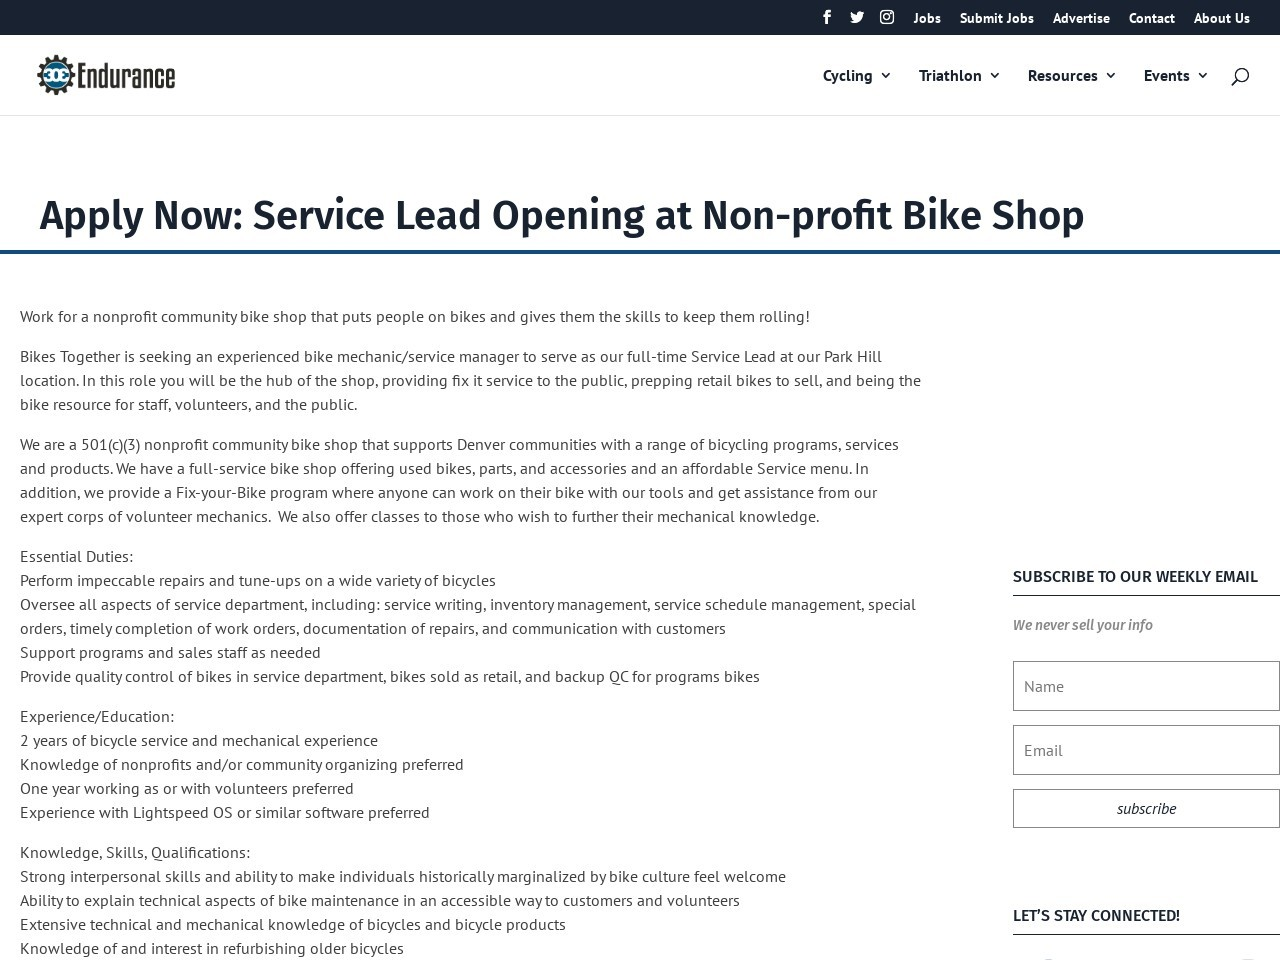 Apply Now: Service Lead Opening at Non-profit Bike Shop